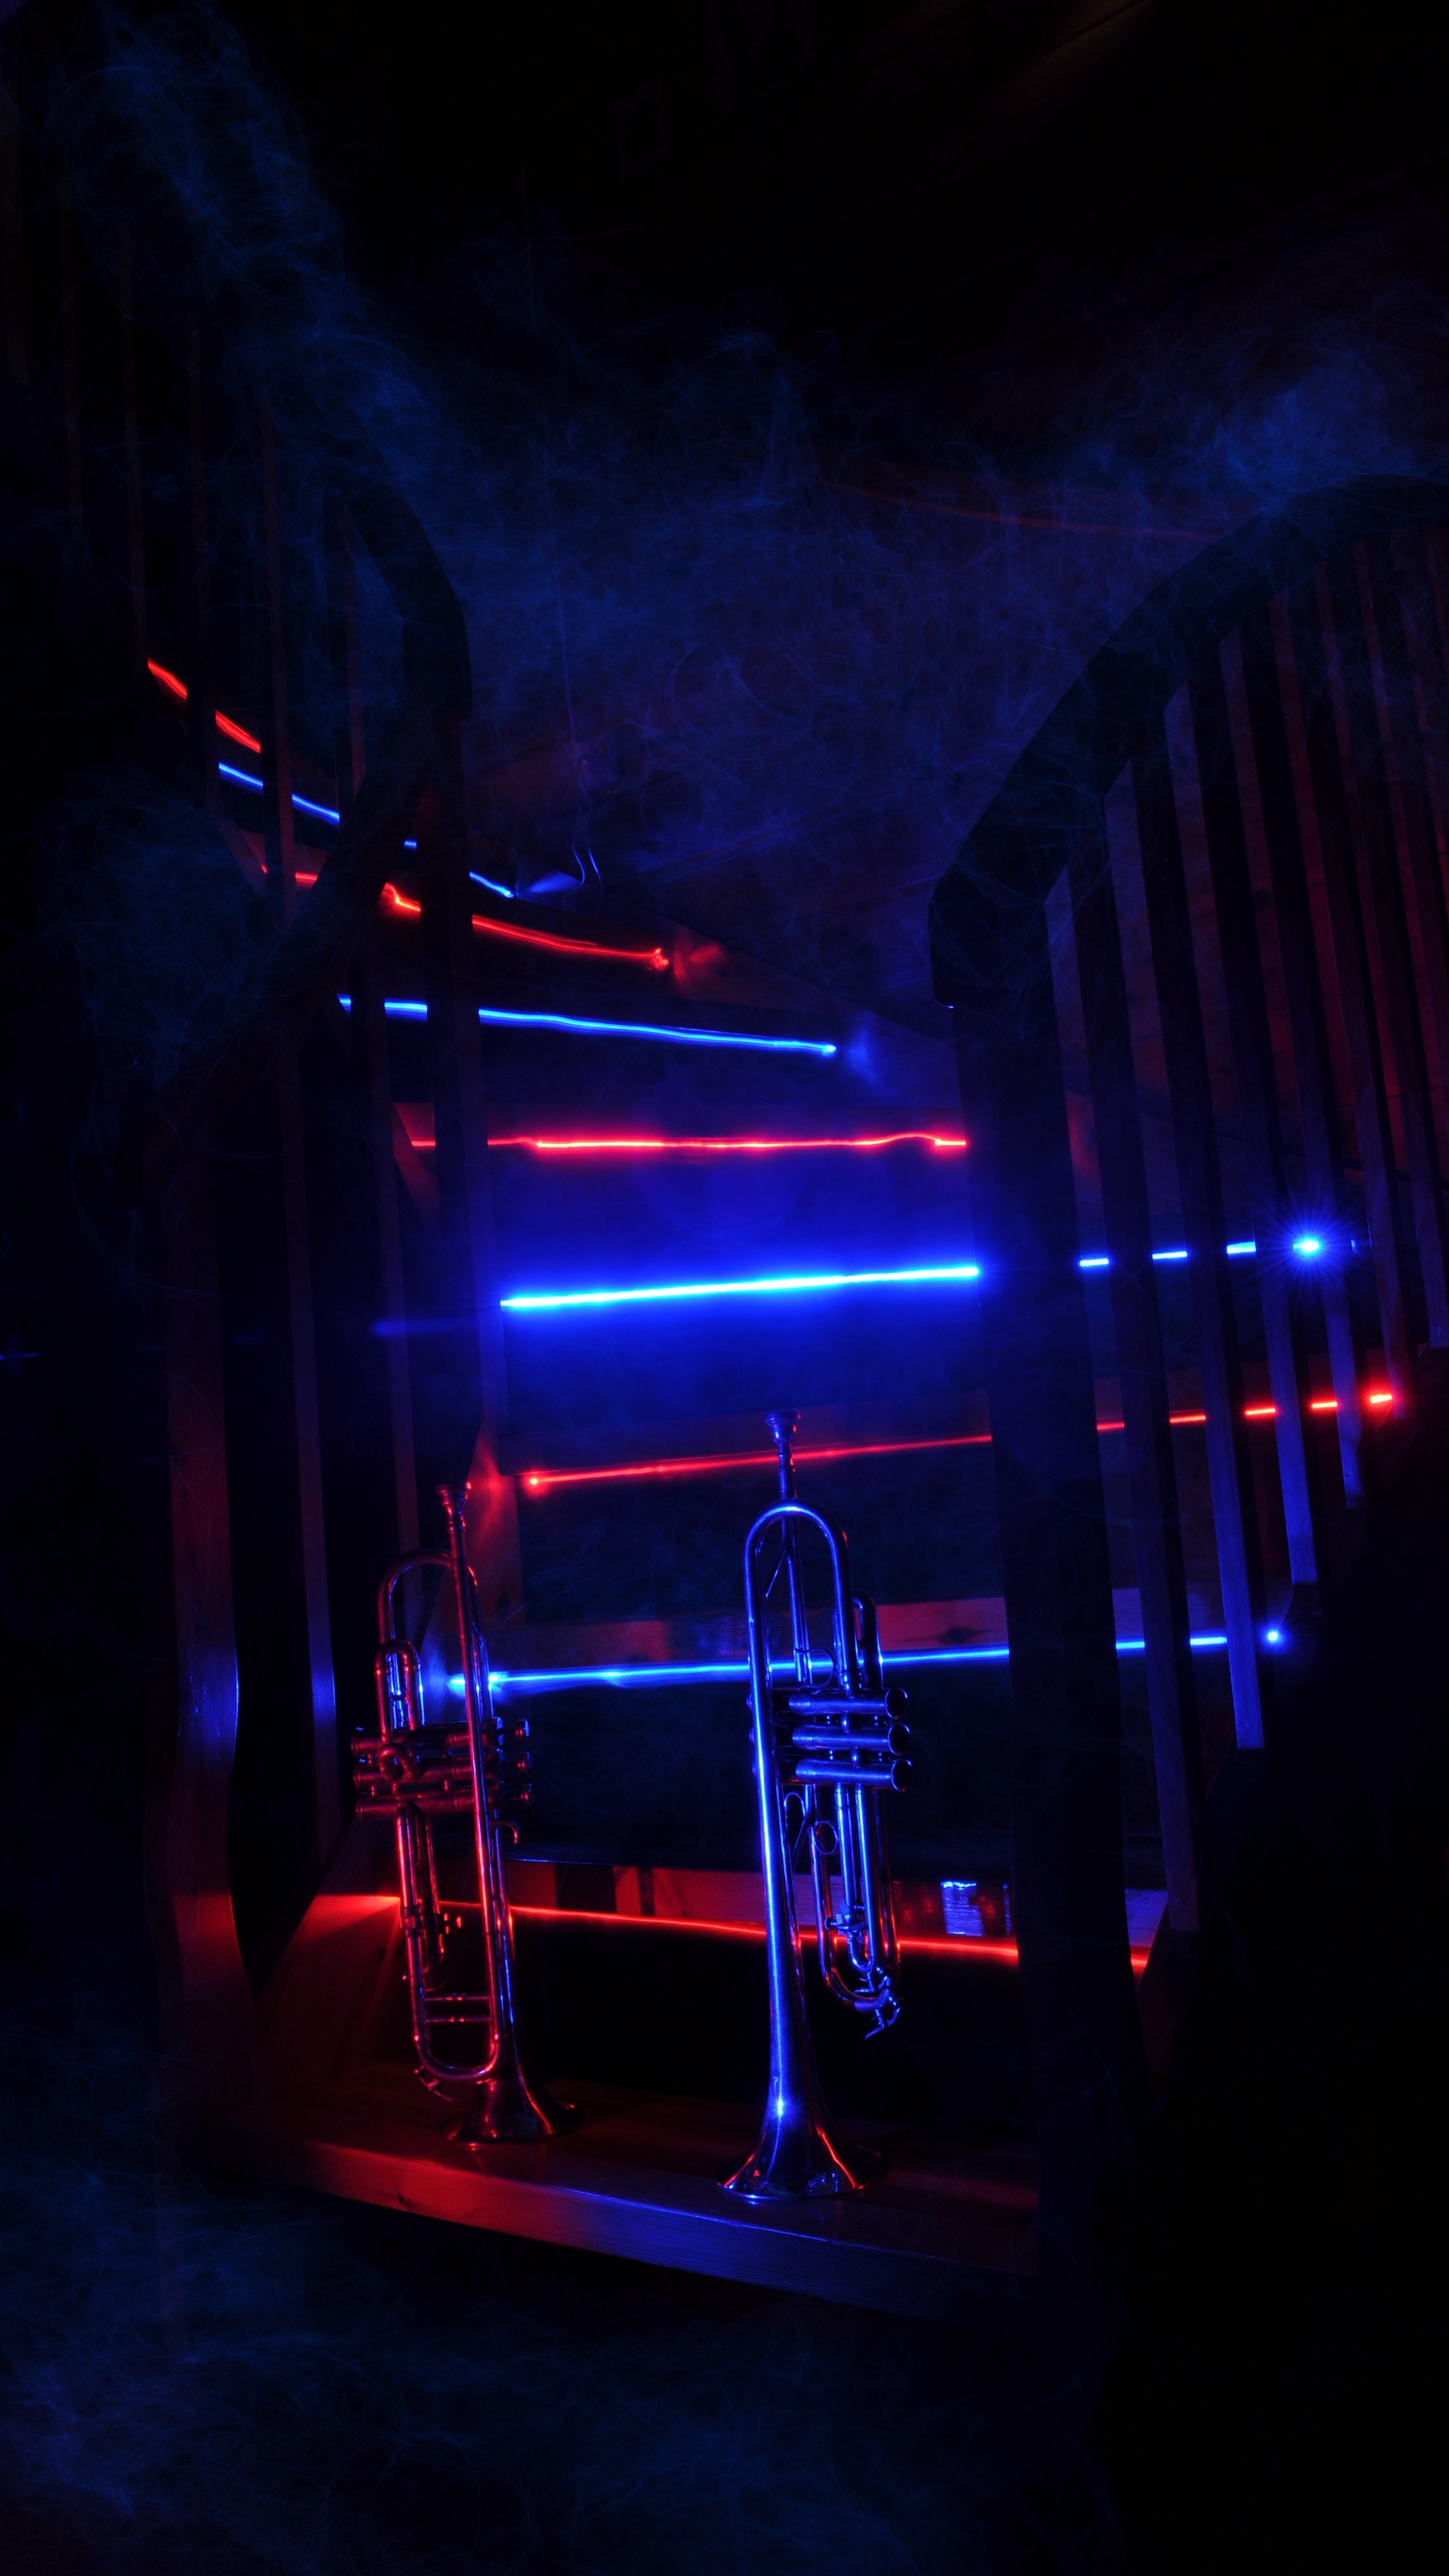 2160x3840  Wallpaper trumpet, music, stairway, neon, backlight, smoke